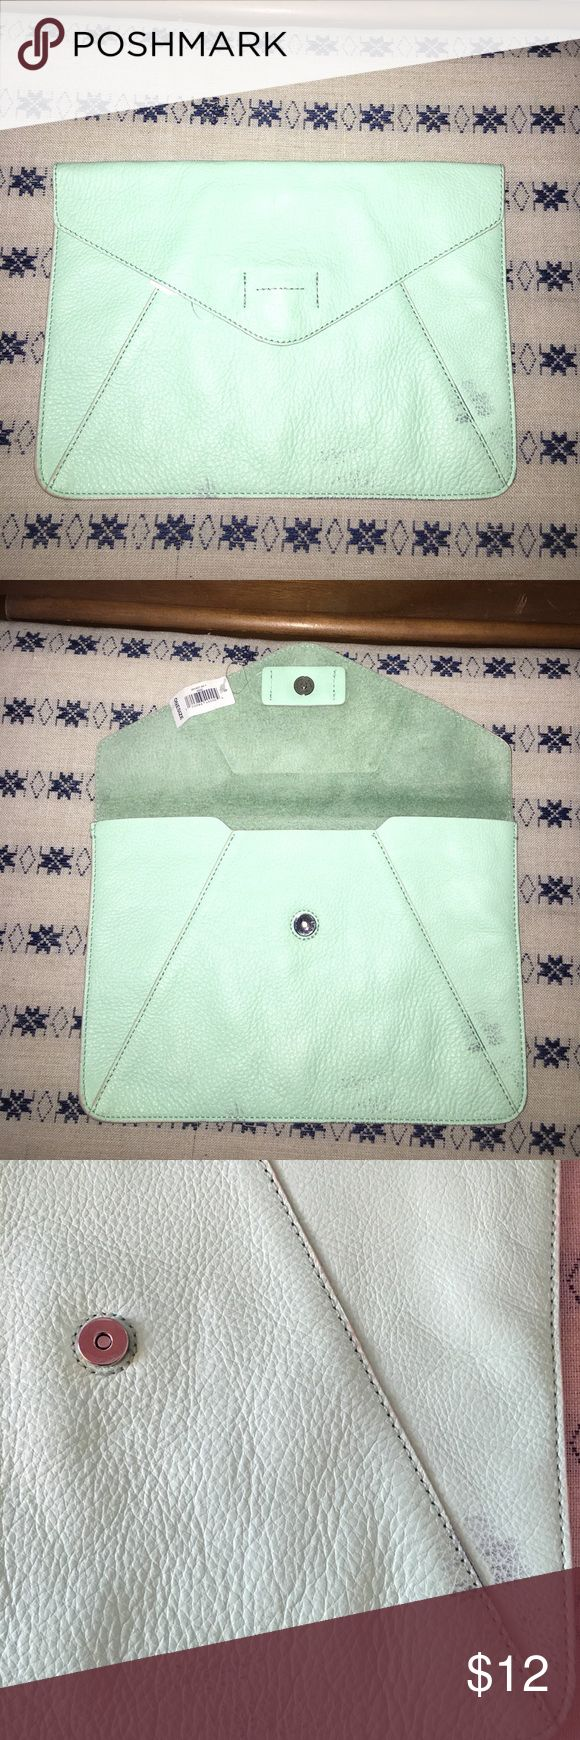 Leather envelope clutch Gap leather envelope clutch. Mint green color. Has slight discoloration on front (see photo). Snap closure. GAP Bags Clutches & Wristlets